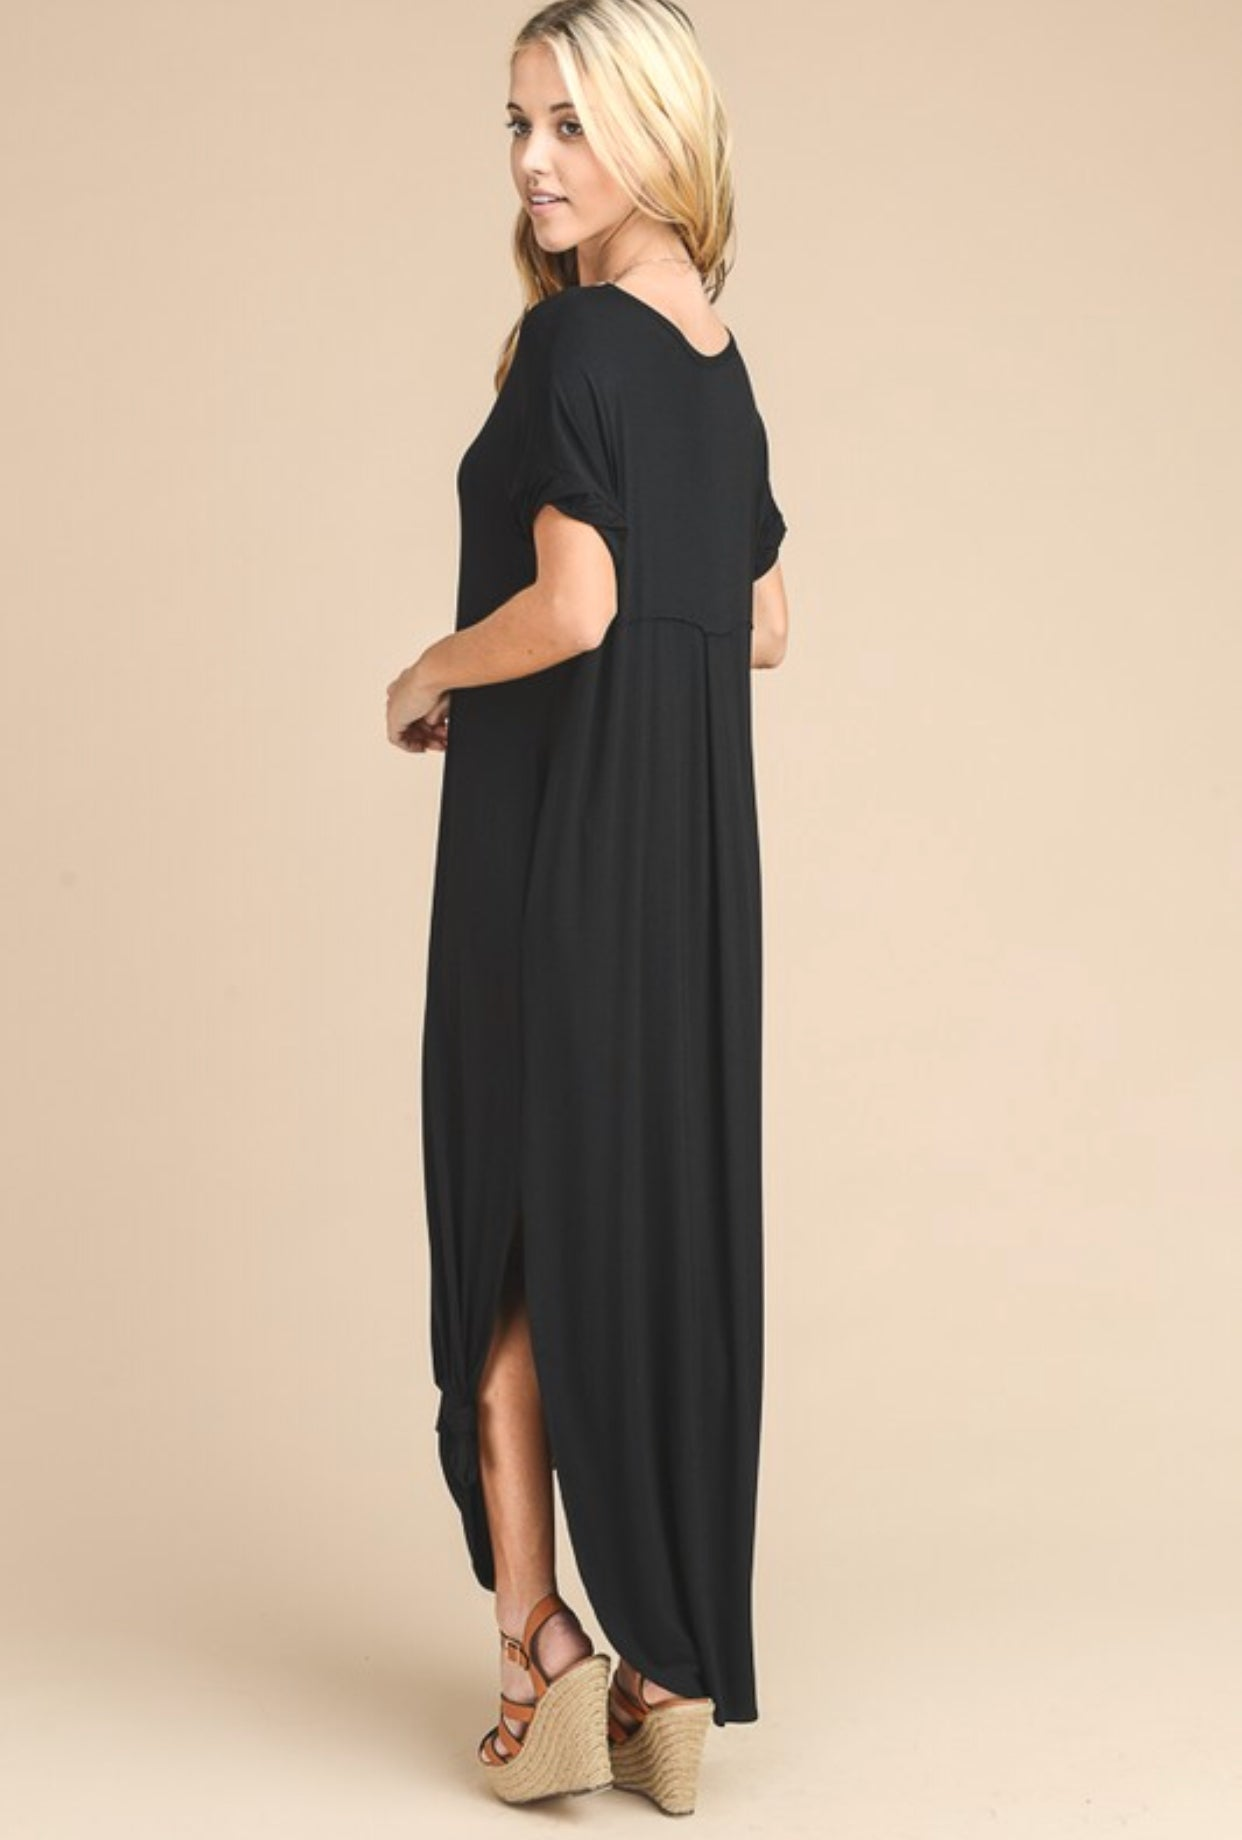 Oversized Short Sleeve Black Maxi